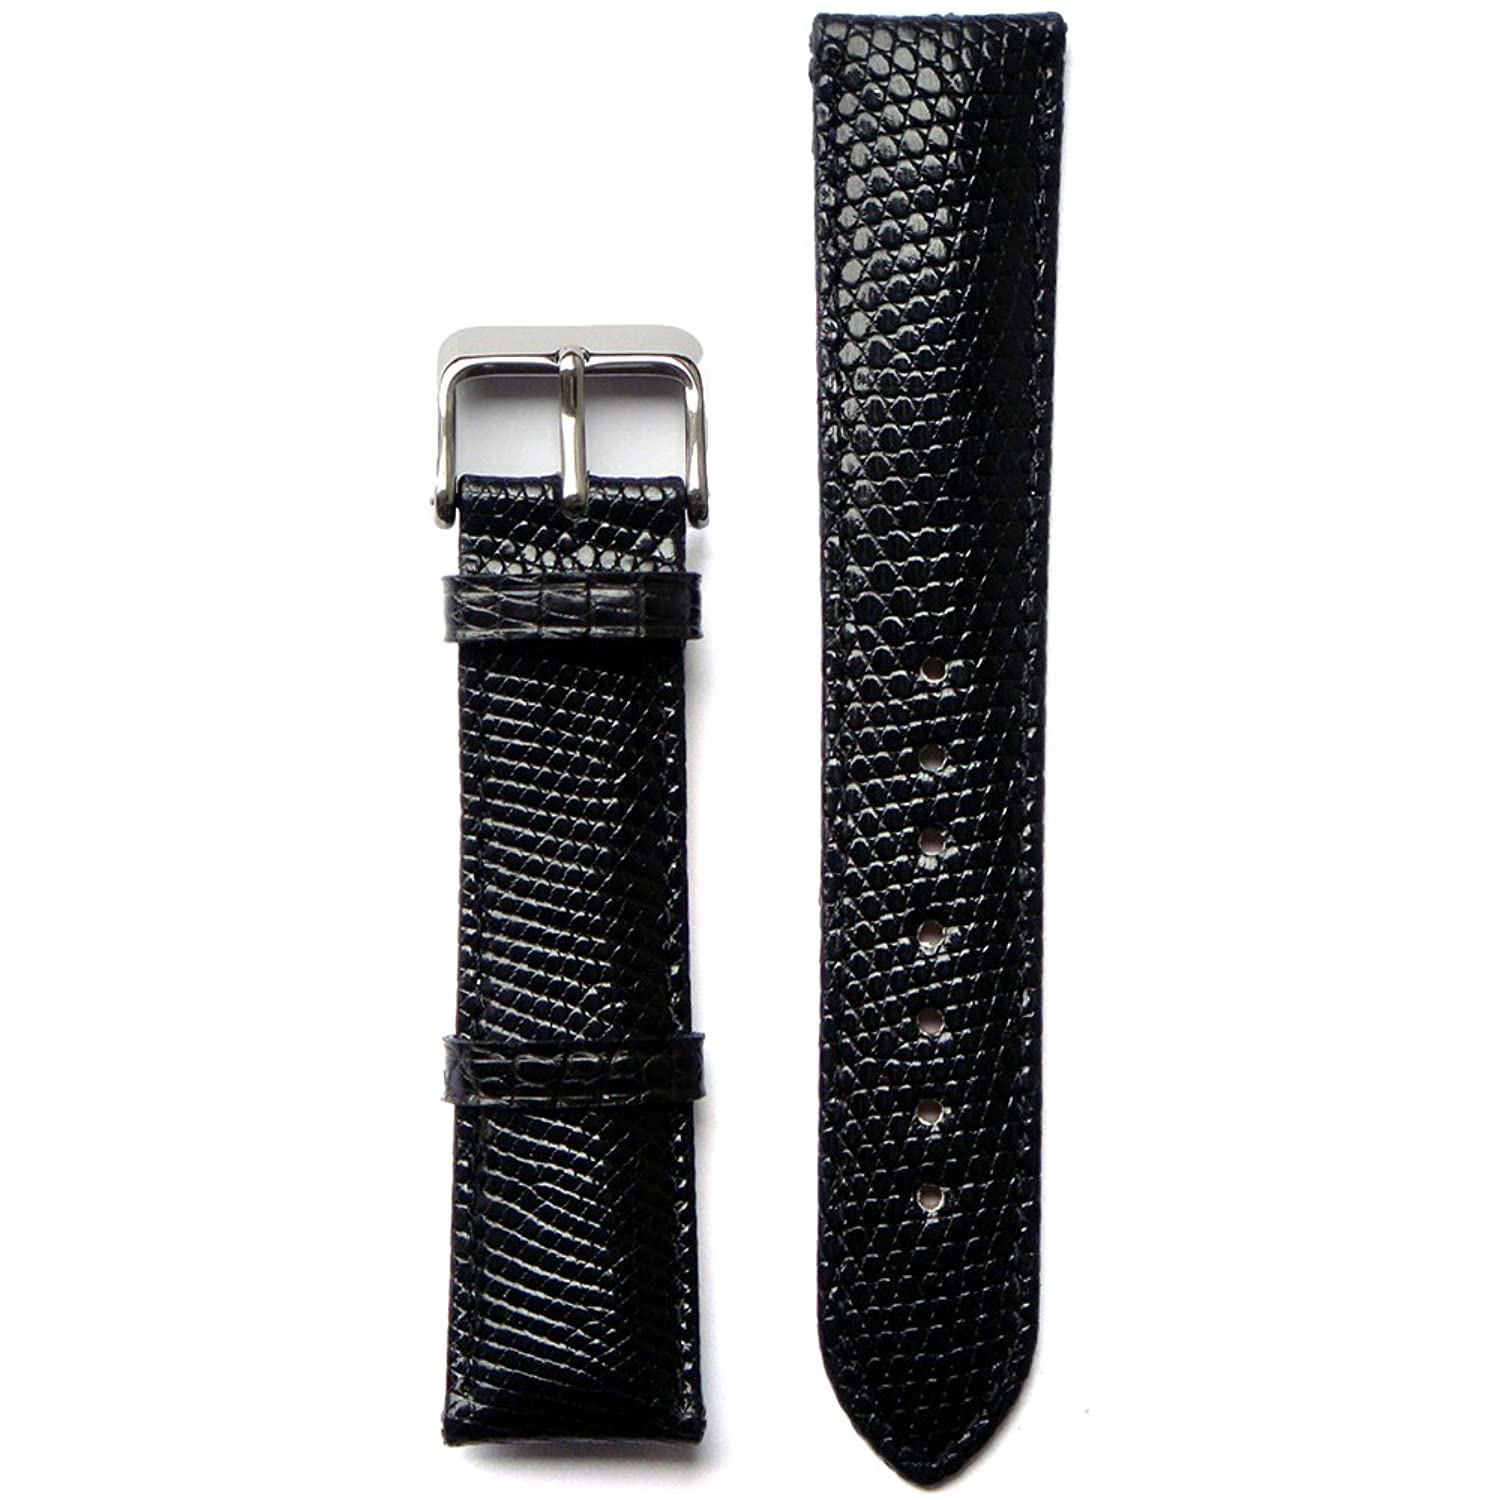 Black 20 Millimeters Genuine Lizard Skin Watch Strap methode cholley suisse эмульсия для тела biolaston 200ml